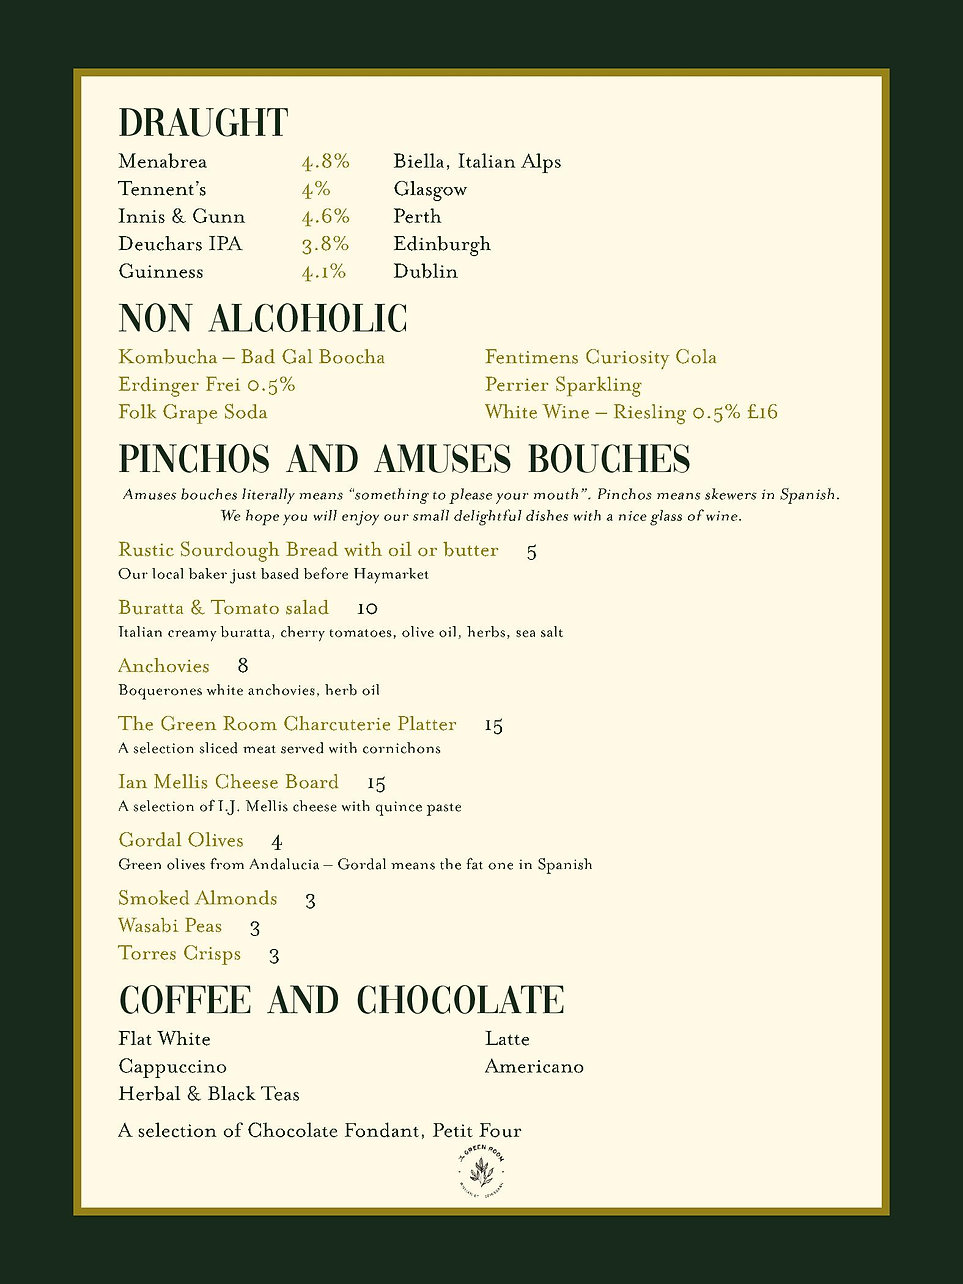 An image of the menu featuring Draught and Non-Alcoholic